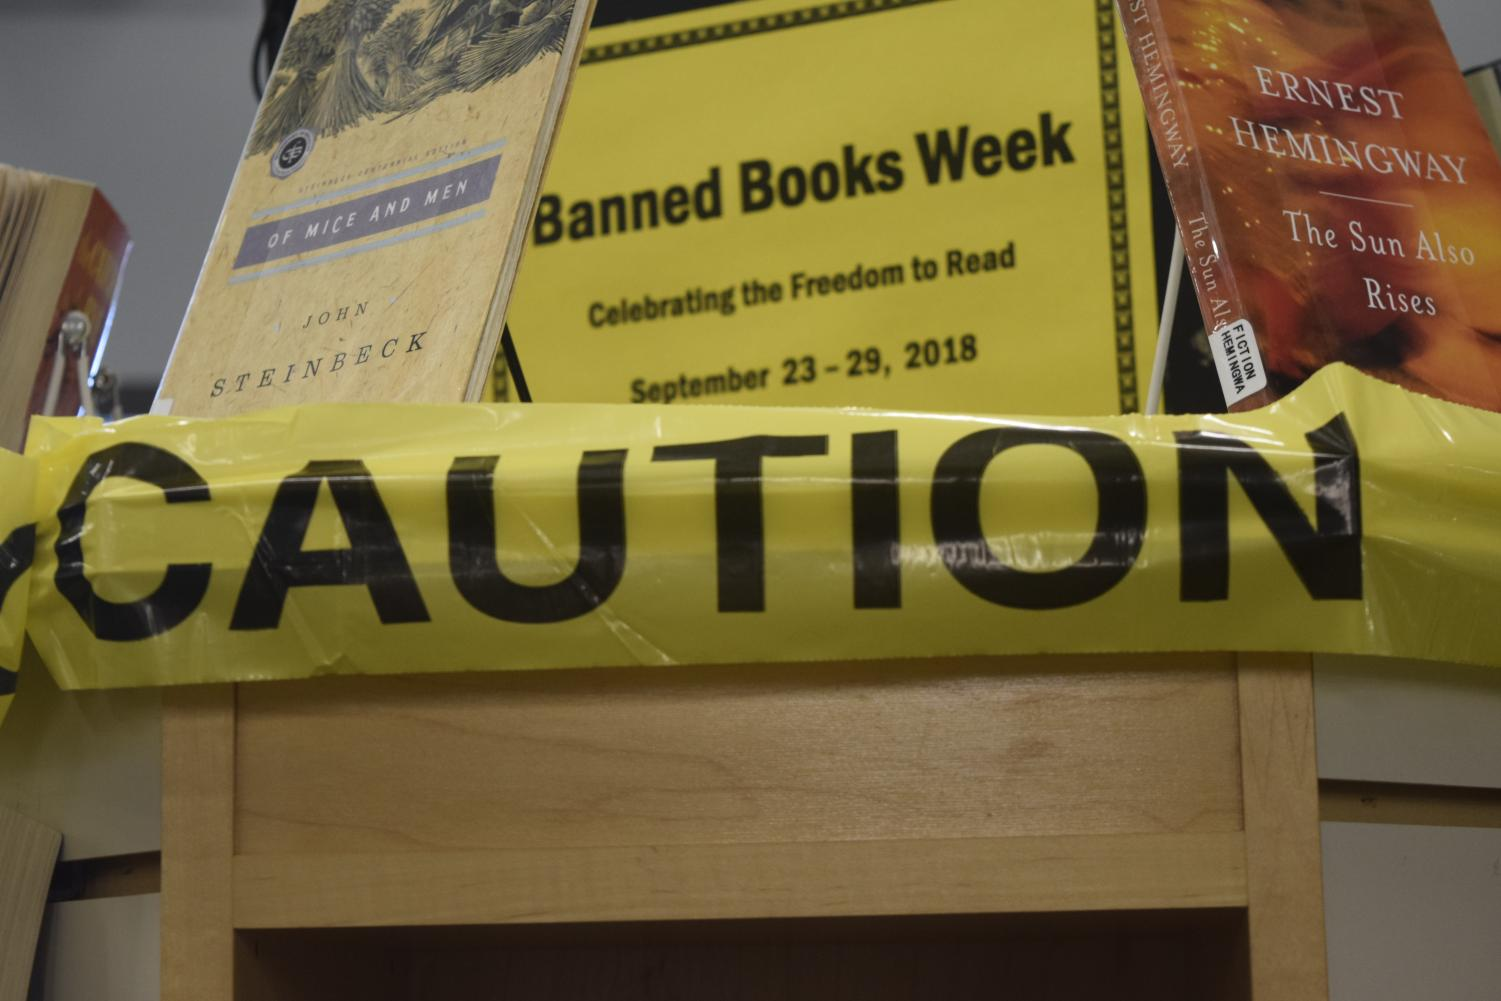 Banned book week stand in Littleton Colo., at the Edwin A. Bemis public library, Sept. 24, 2018.